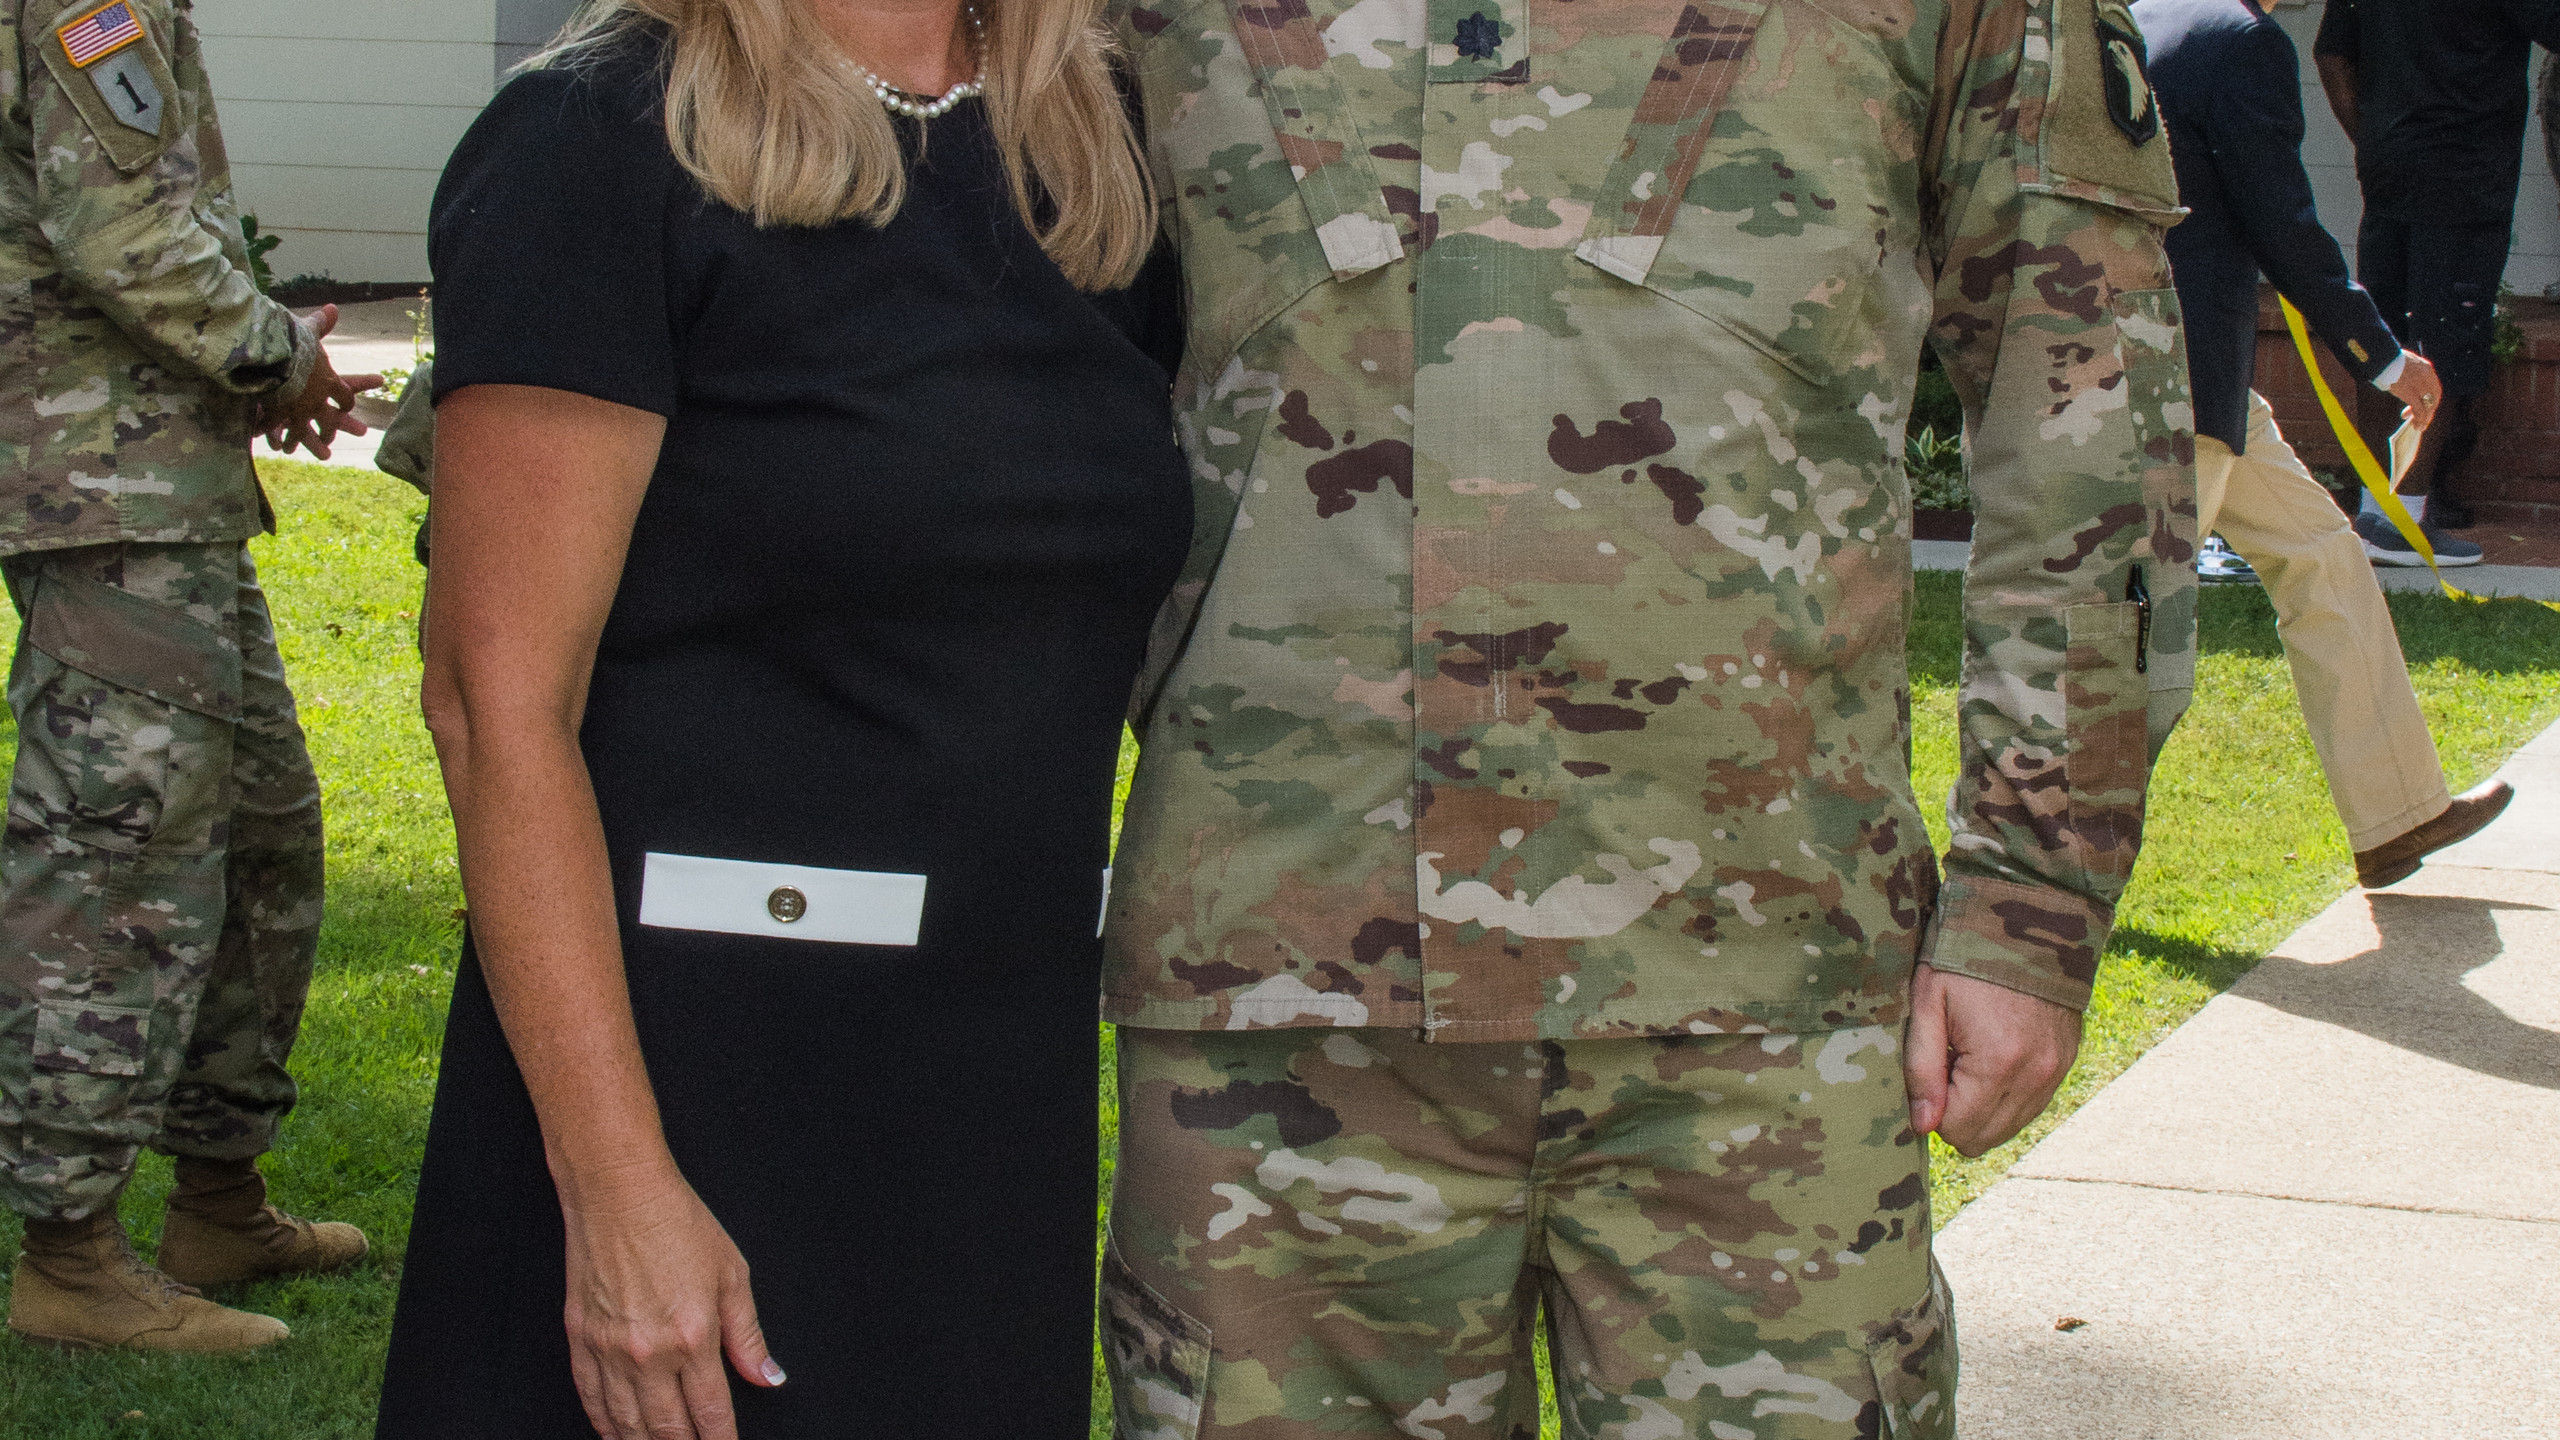 Kim Wead and Lt Col Wead